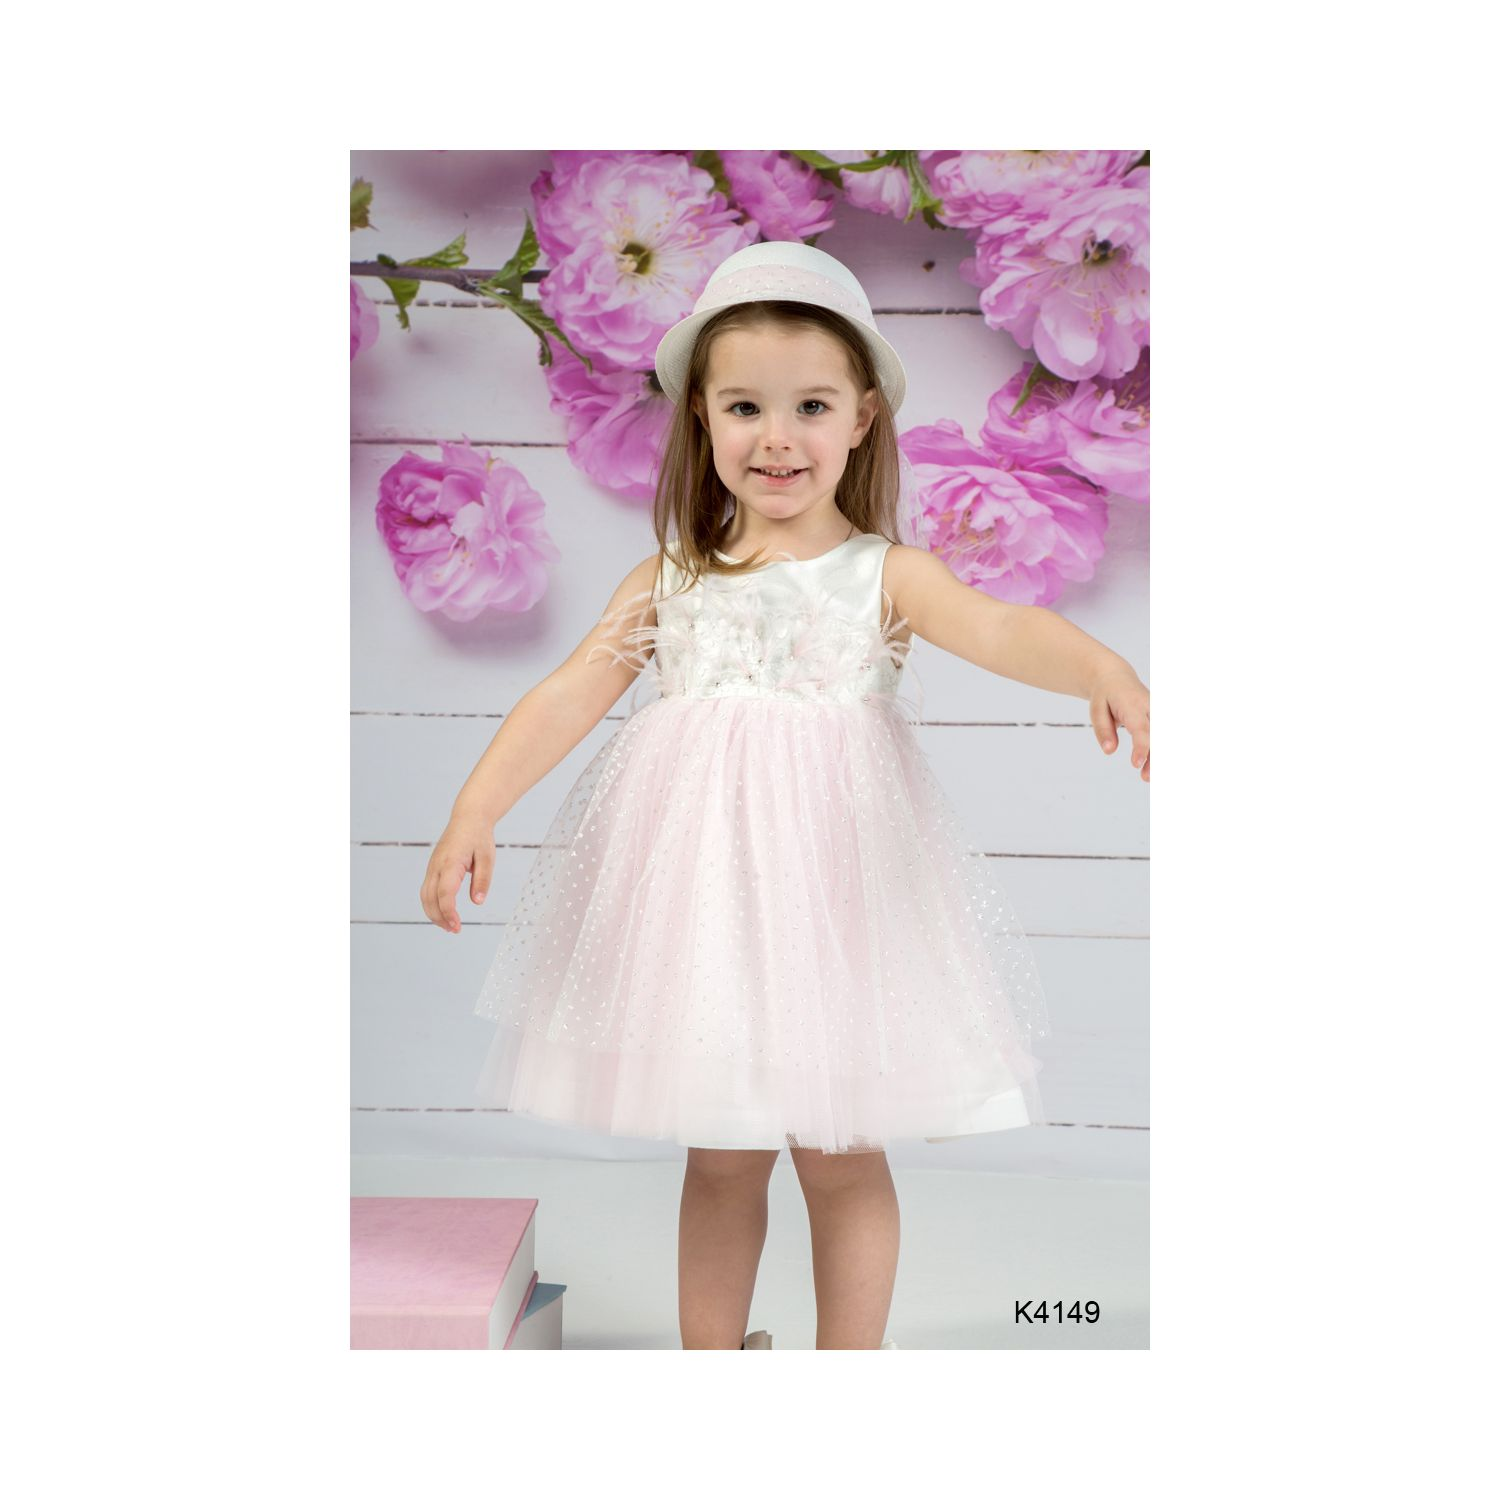 Baptism clothes for girl K4149